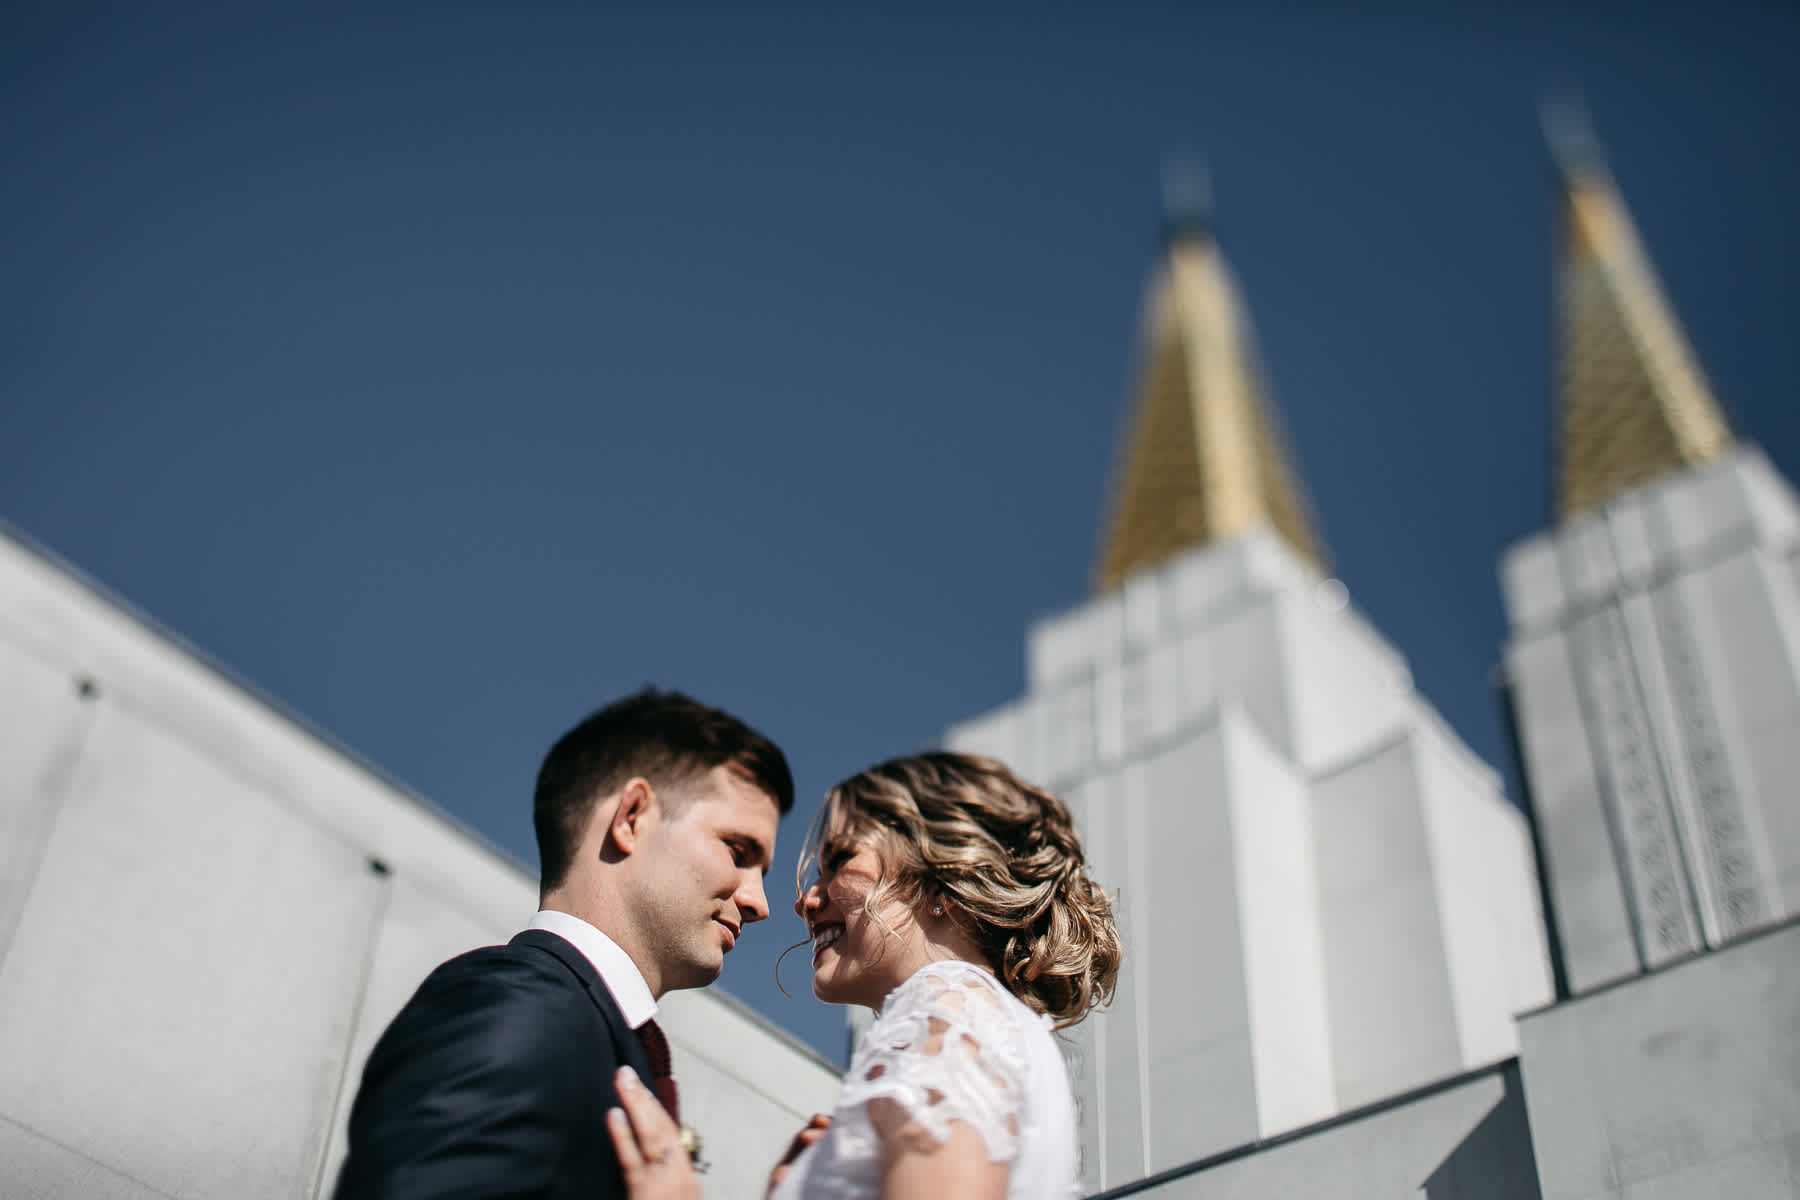 oakland-lds-temple-wedding-san-ramon-reception-23